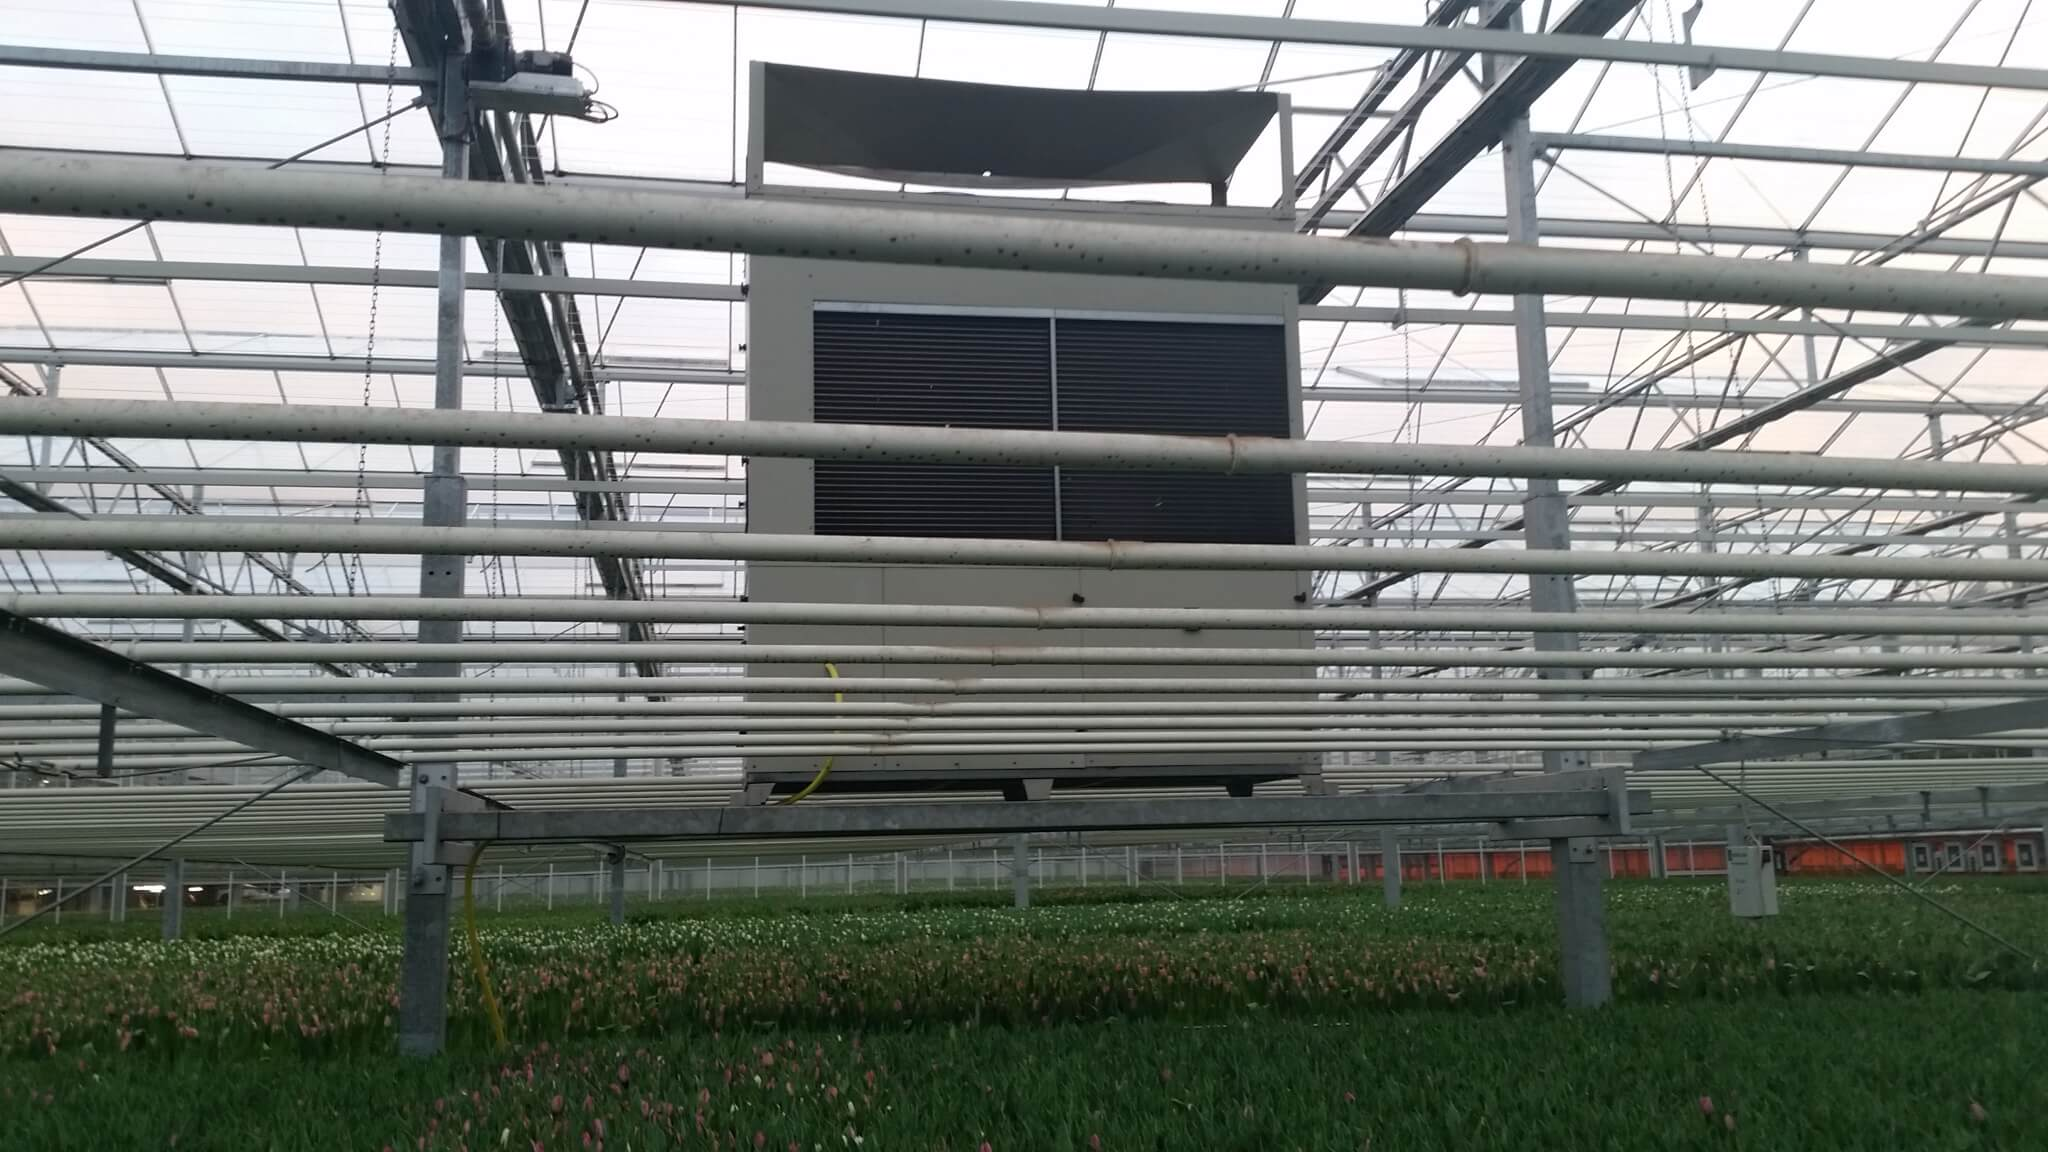 Installed above the crop